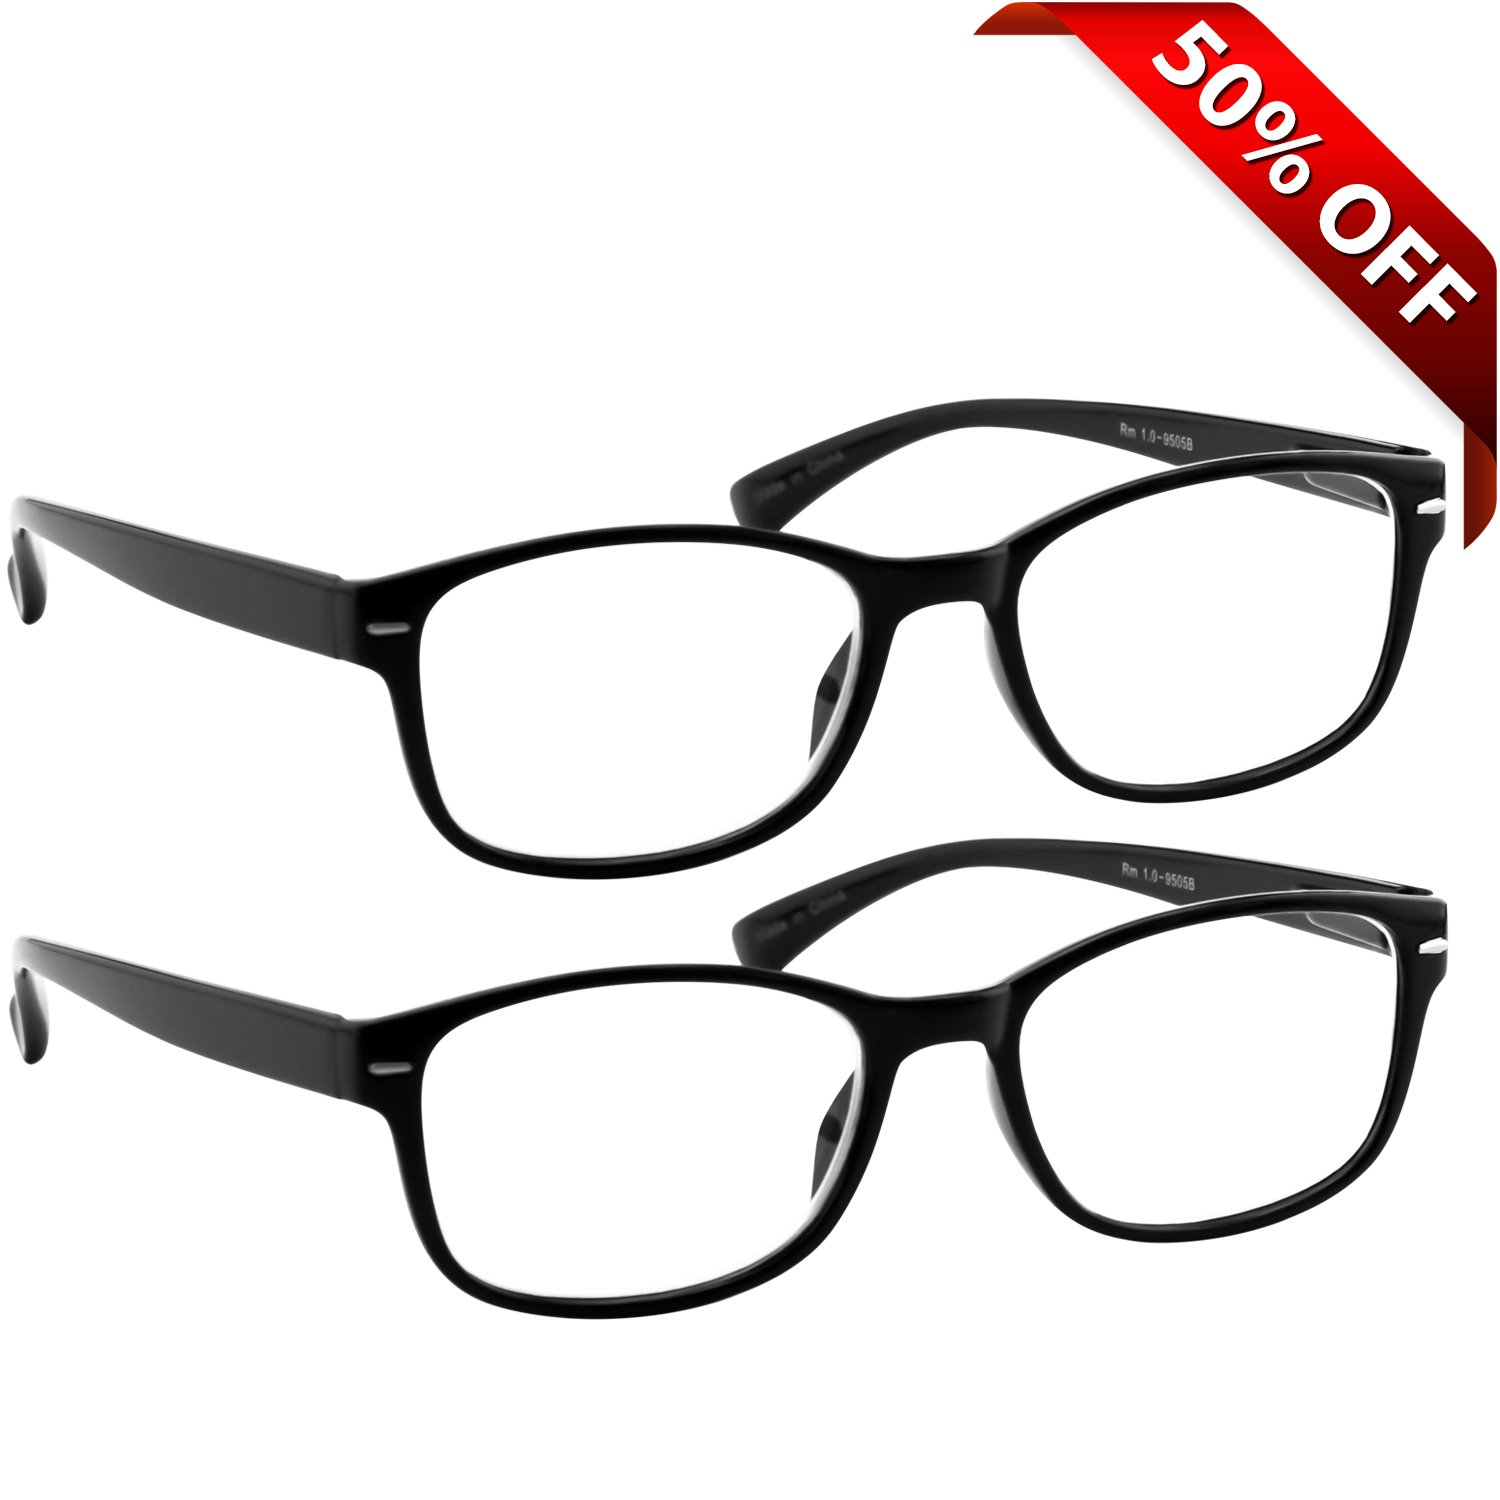 Reading Glasses 2 Pack Black Always Have a Timeless Look, Crystal Clear Vision, Comfort Fit With Sure-Flex Spring Hinge Arms & Dura-Tight Screws 100% Guarantee +1.25